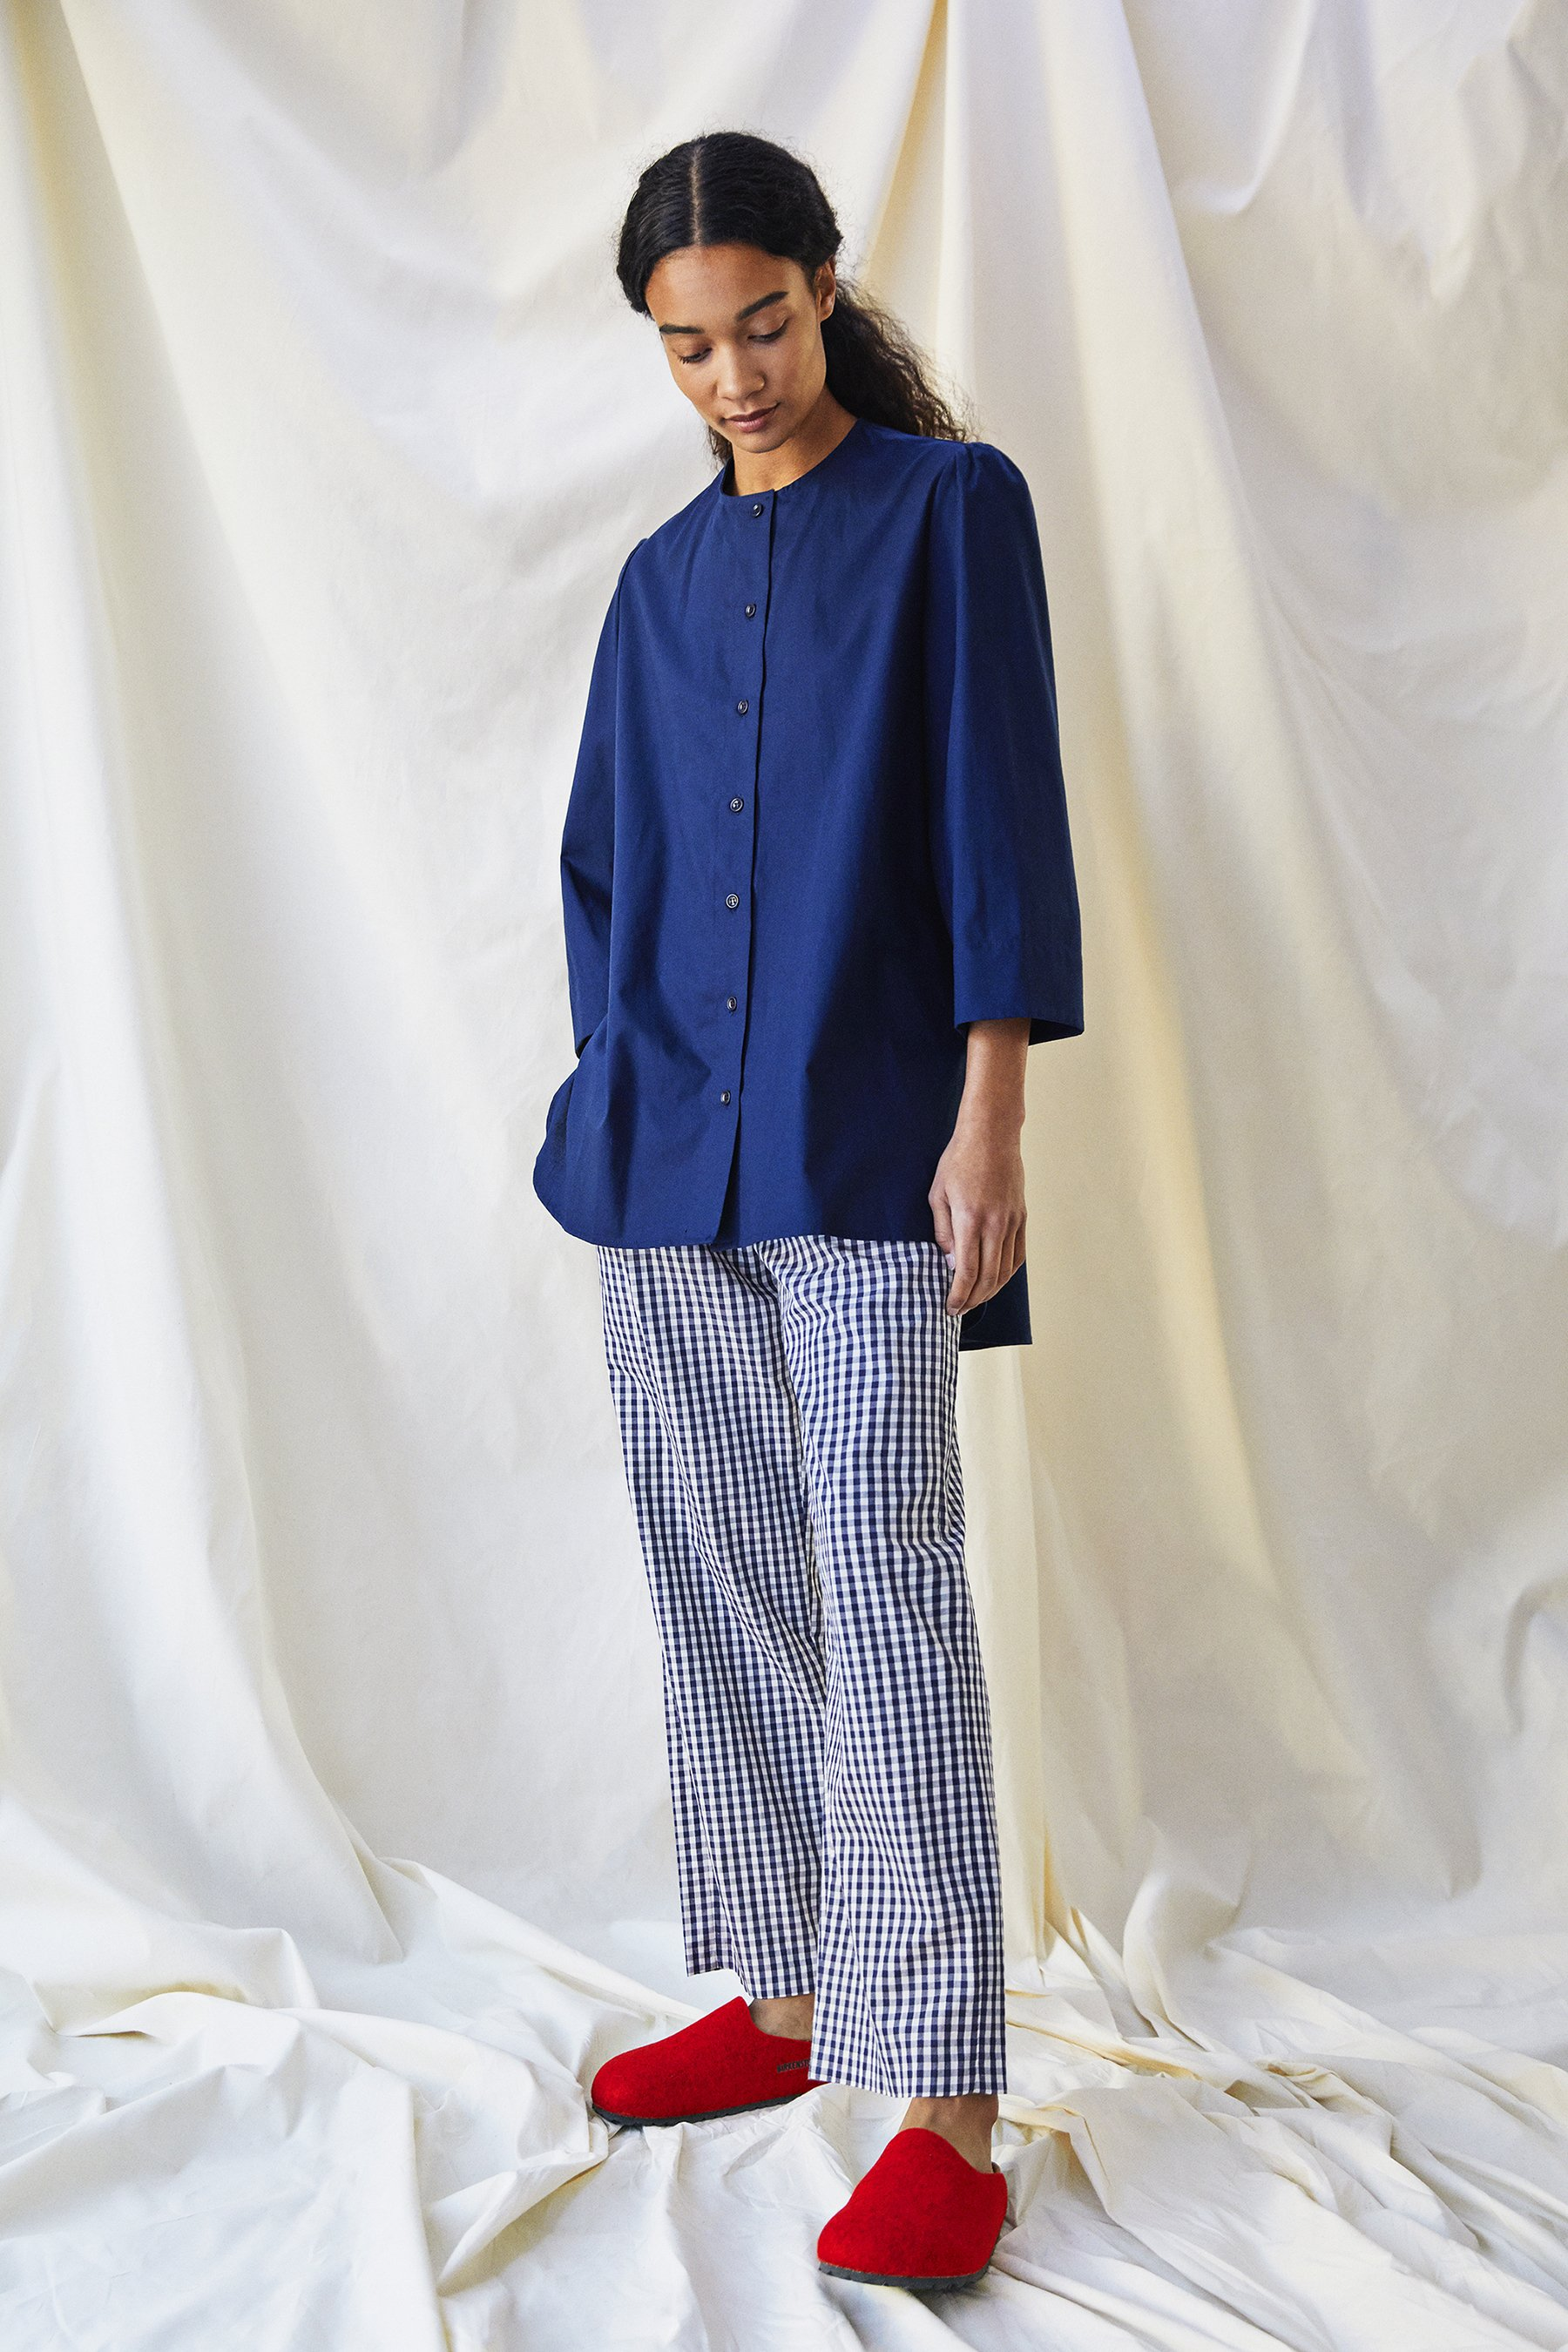 The Bethan Shirt by Alice Early